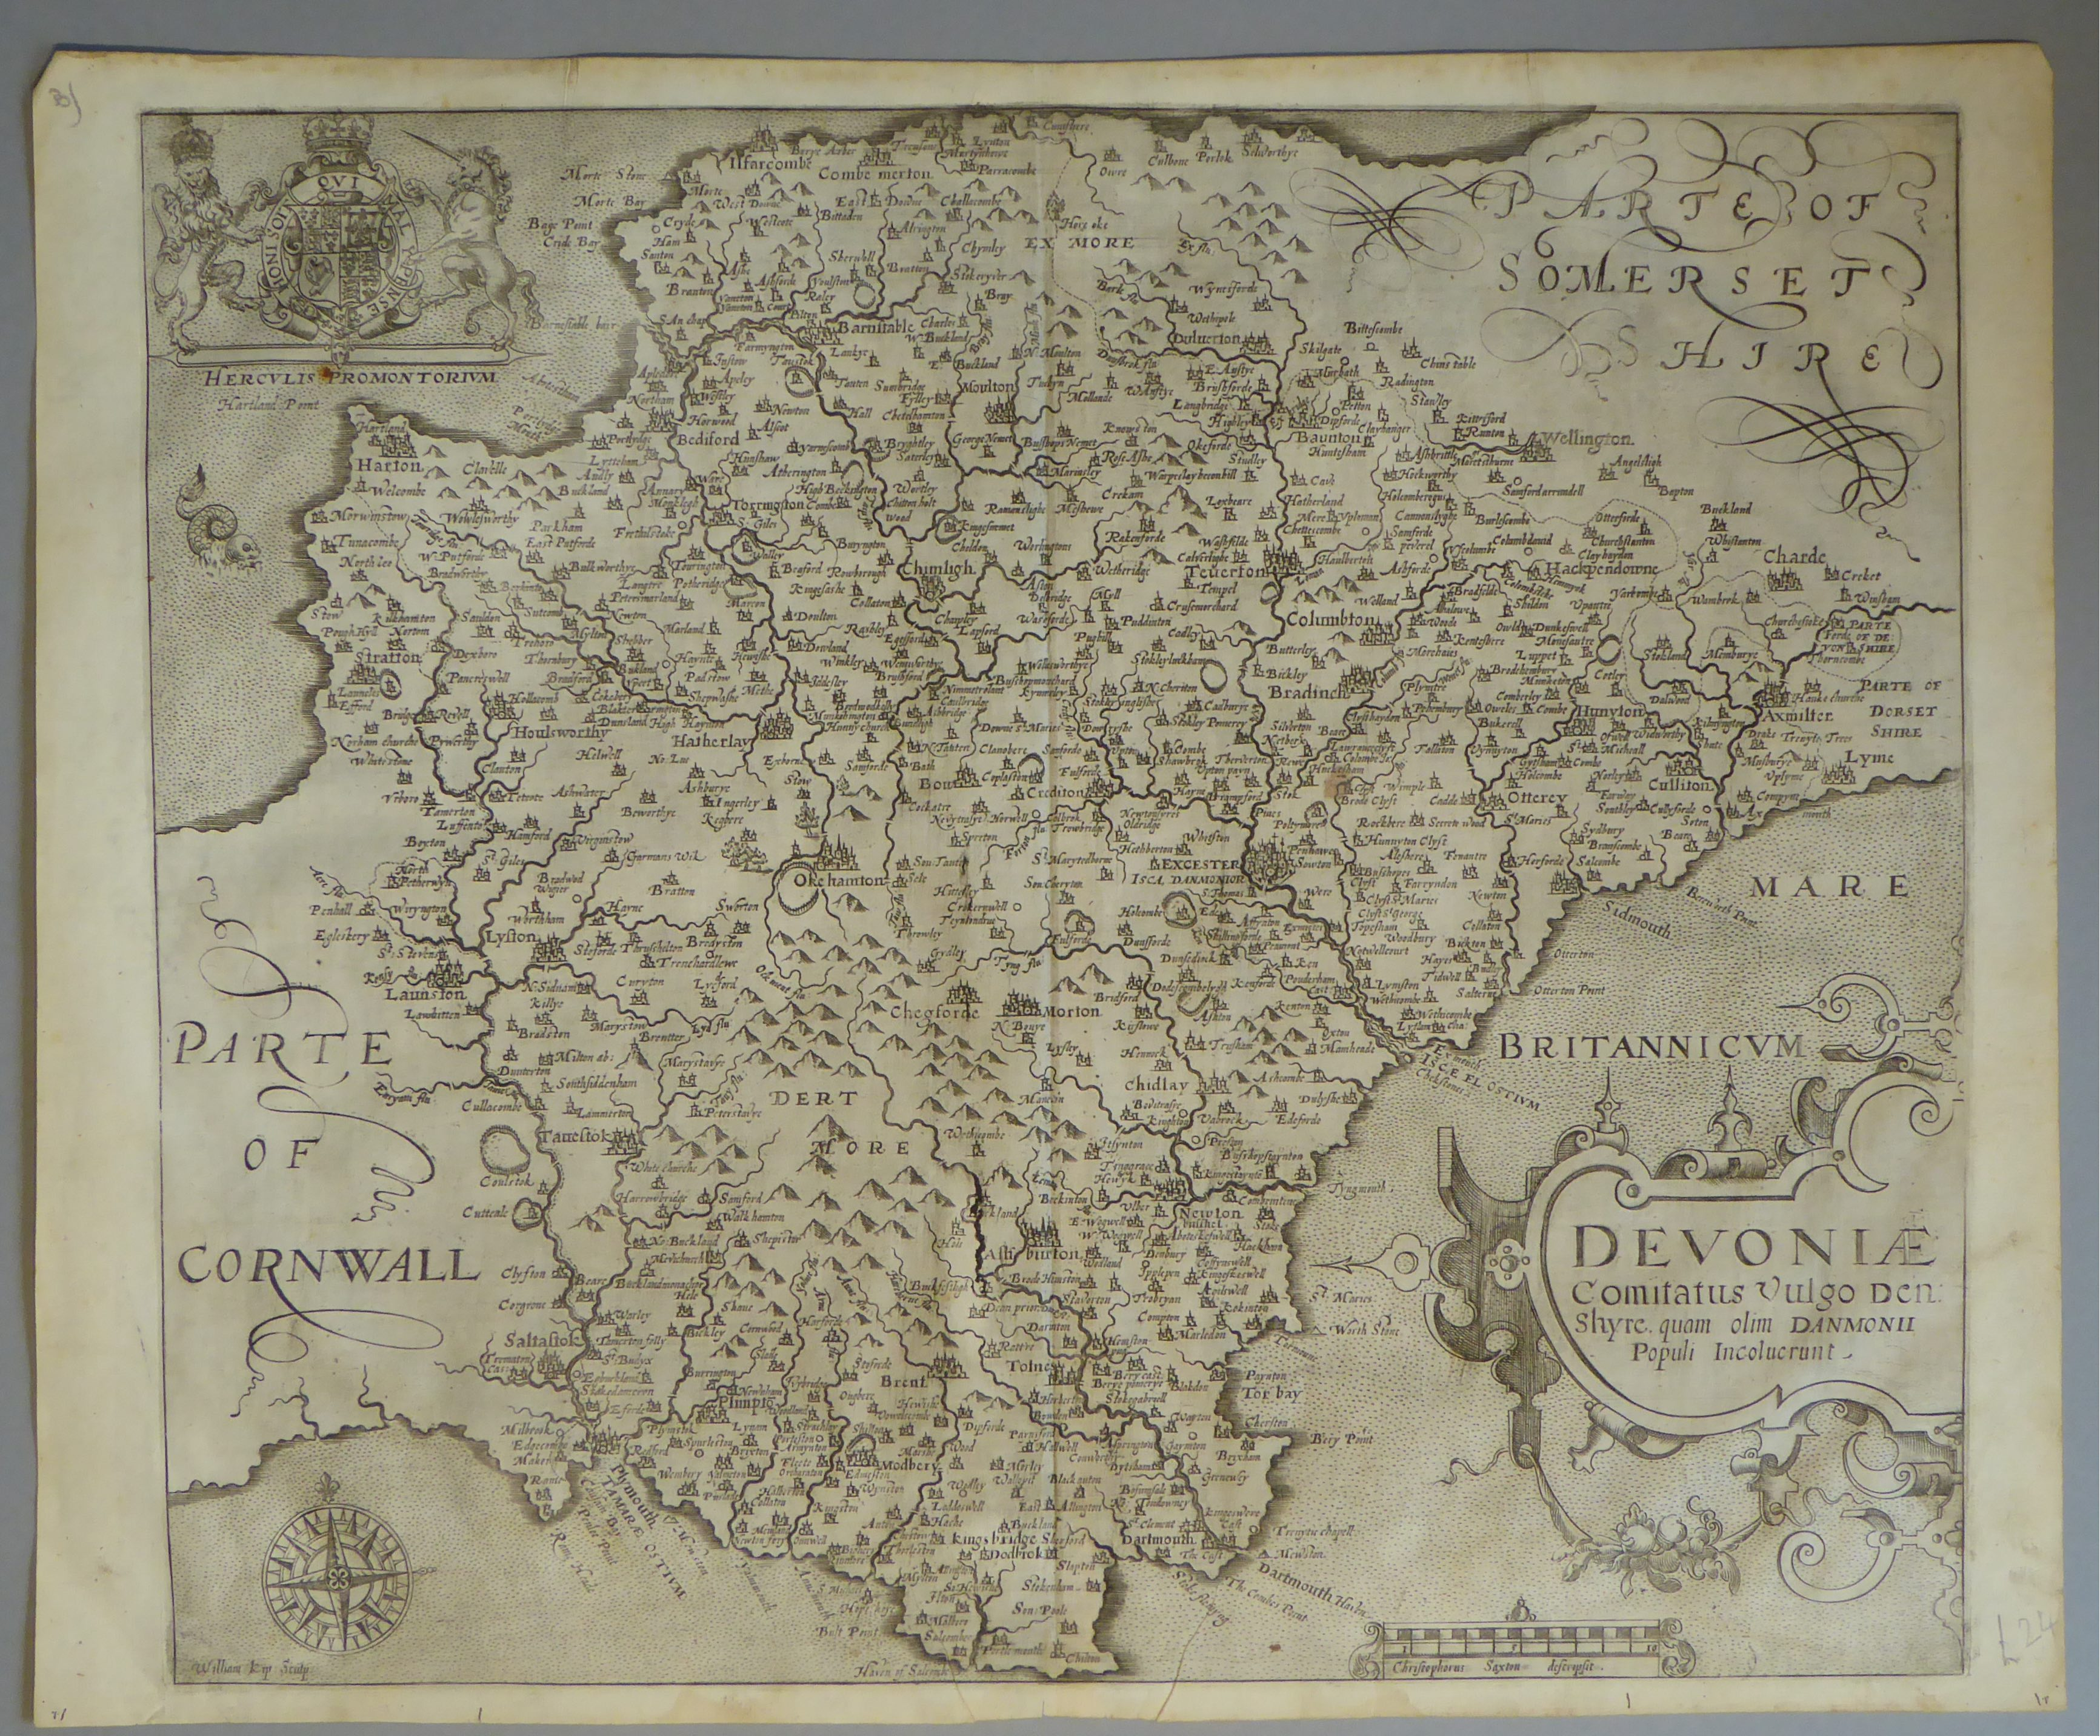 Lot 16 - A C17th Black & White copper engraved map of Devonshire by William Kip c1610